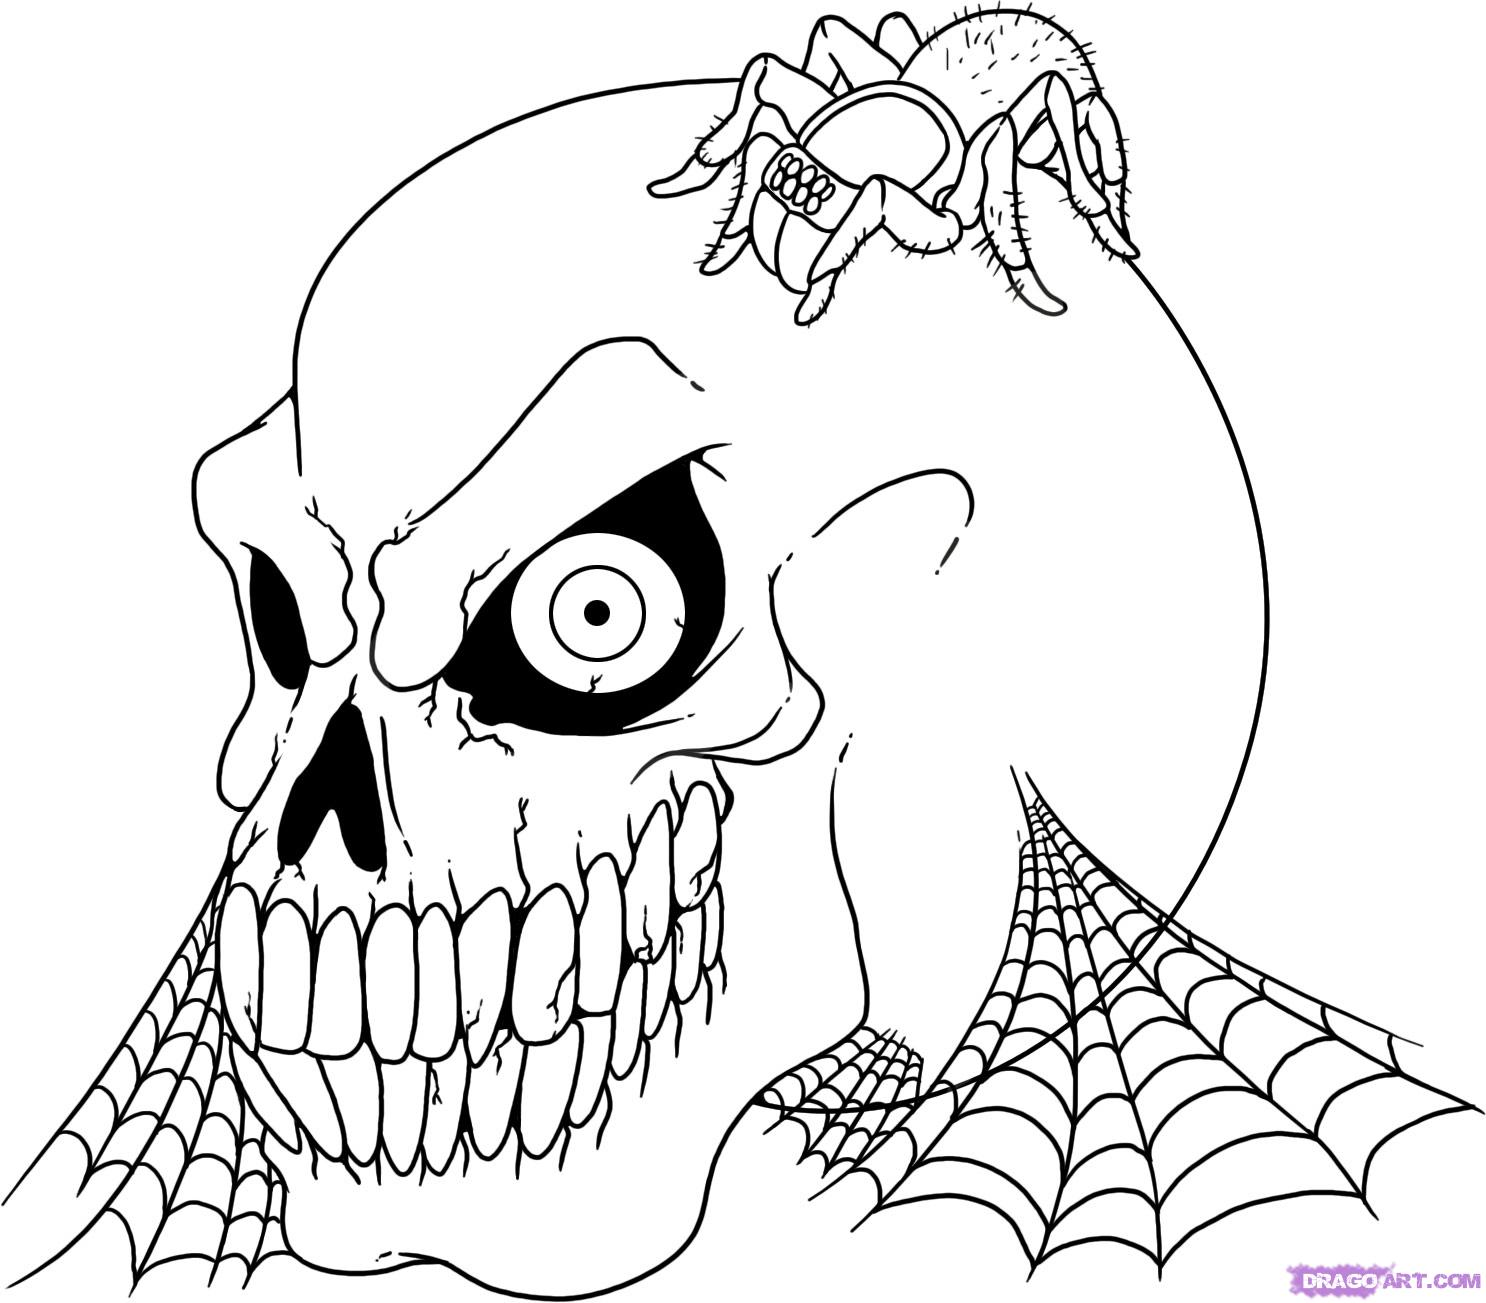 1486x1303 Compromise Skull Coloring Page Skeleton Pages